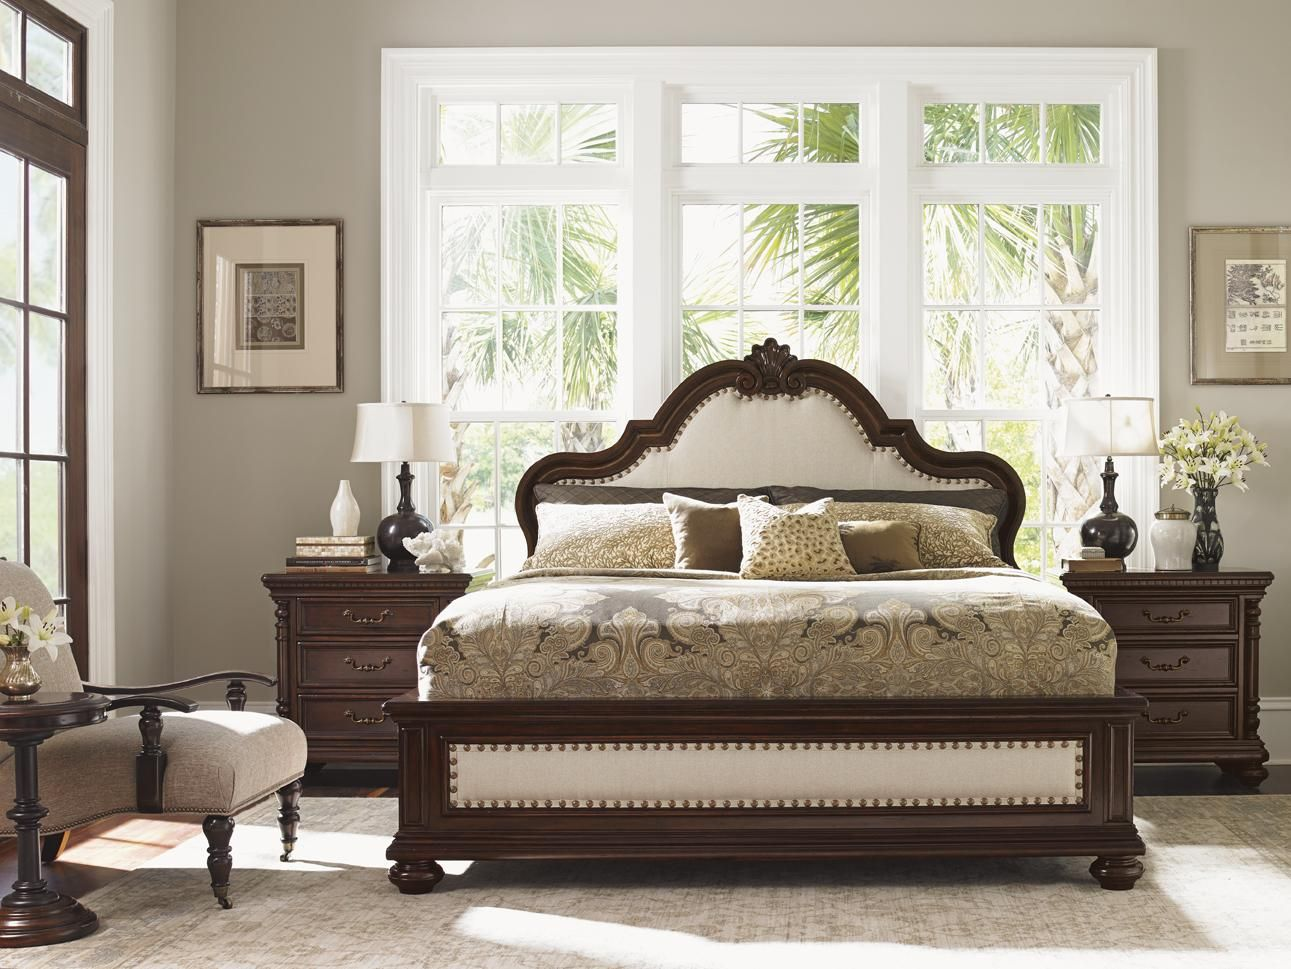 Kilimanjaro Bedroom Group by Tommy Bahama Home Tommy